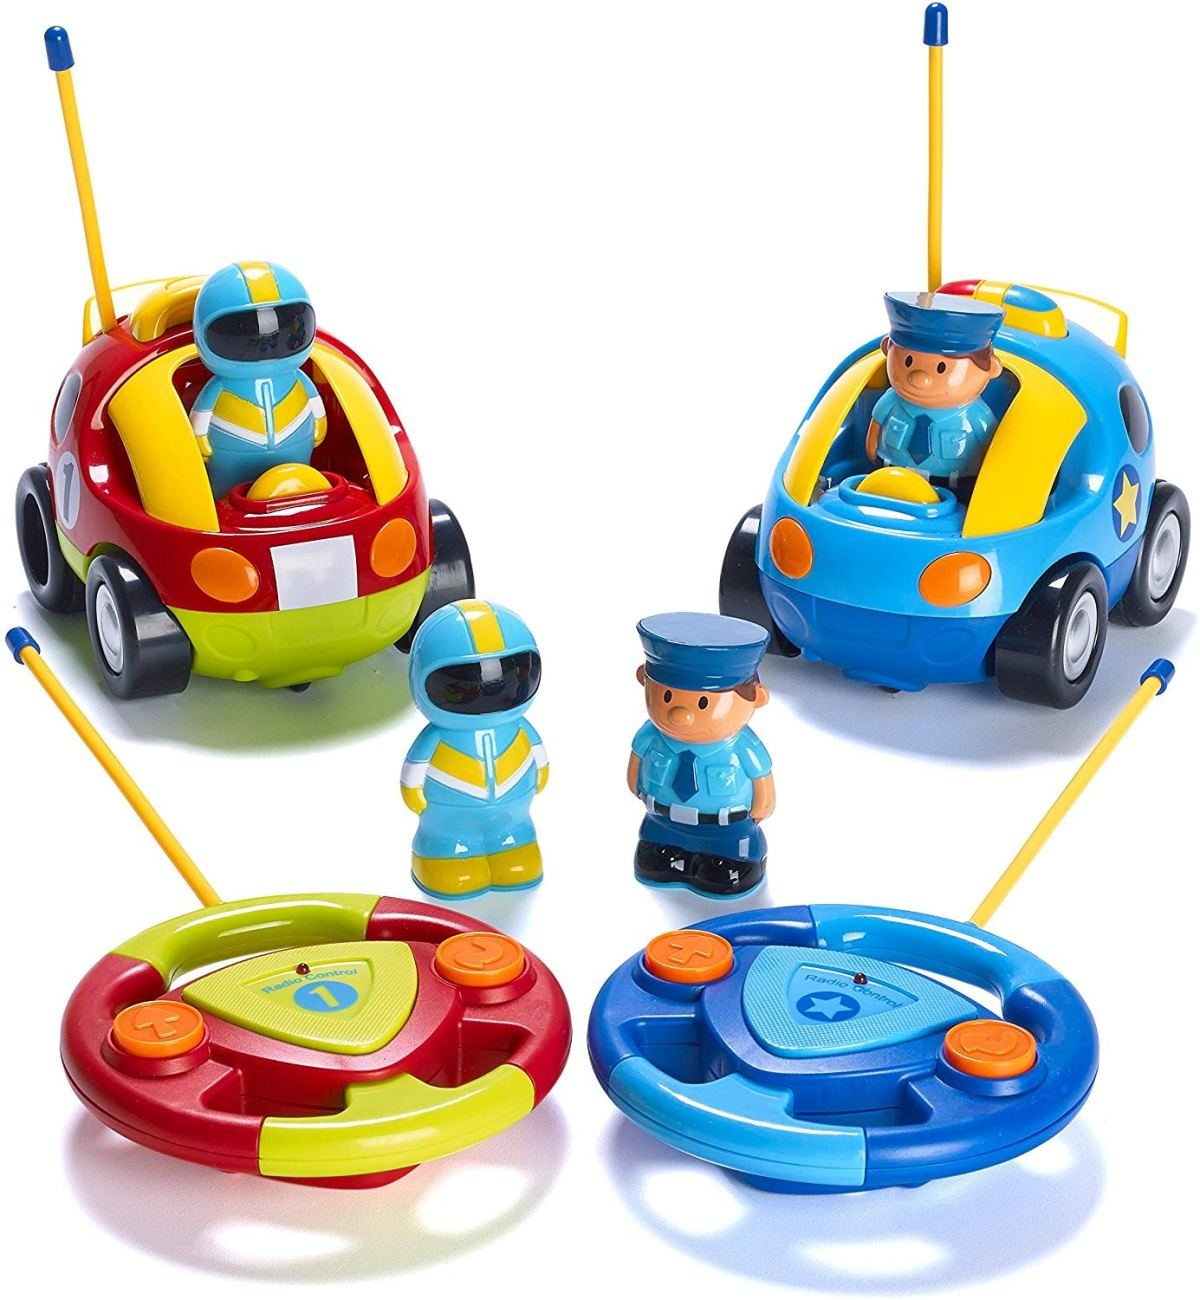 Twins Toys